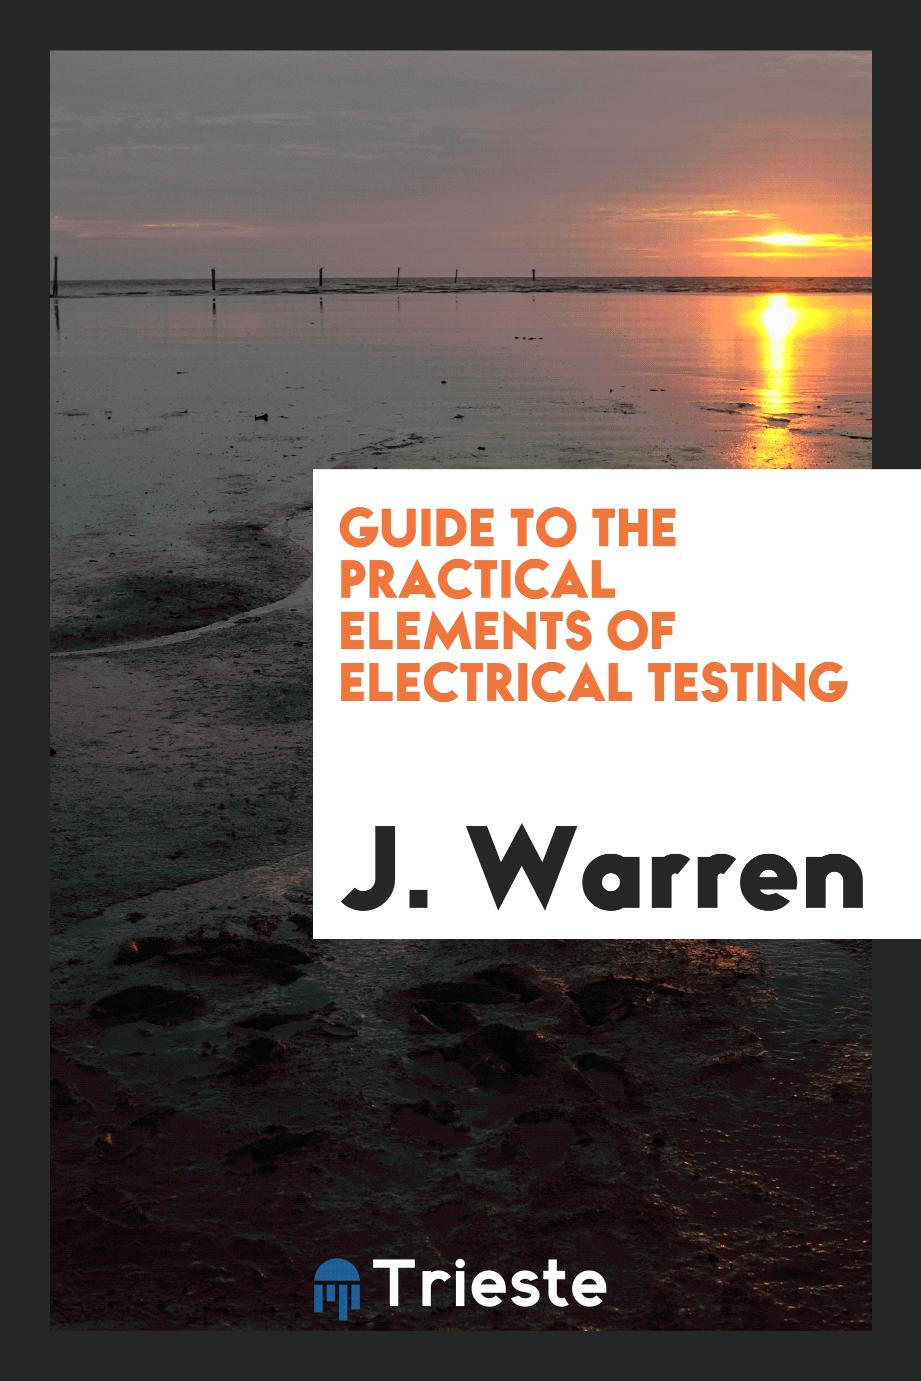 Guide to the Practical Elements of Electrical Testing